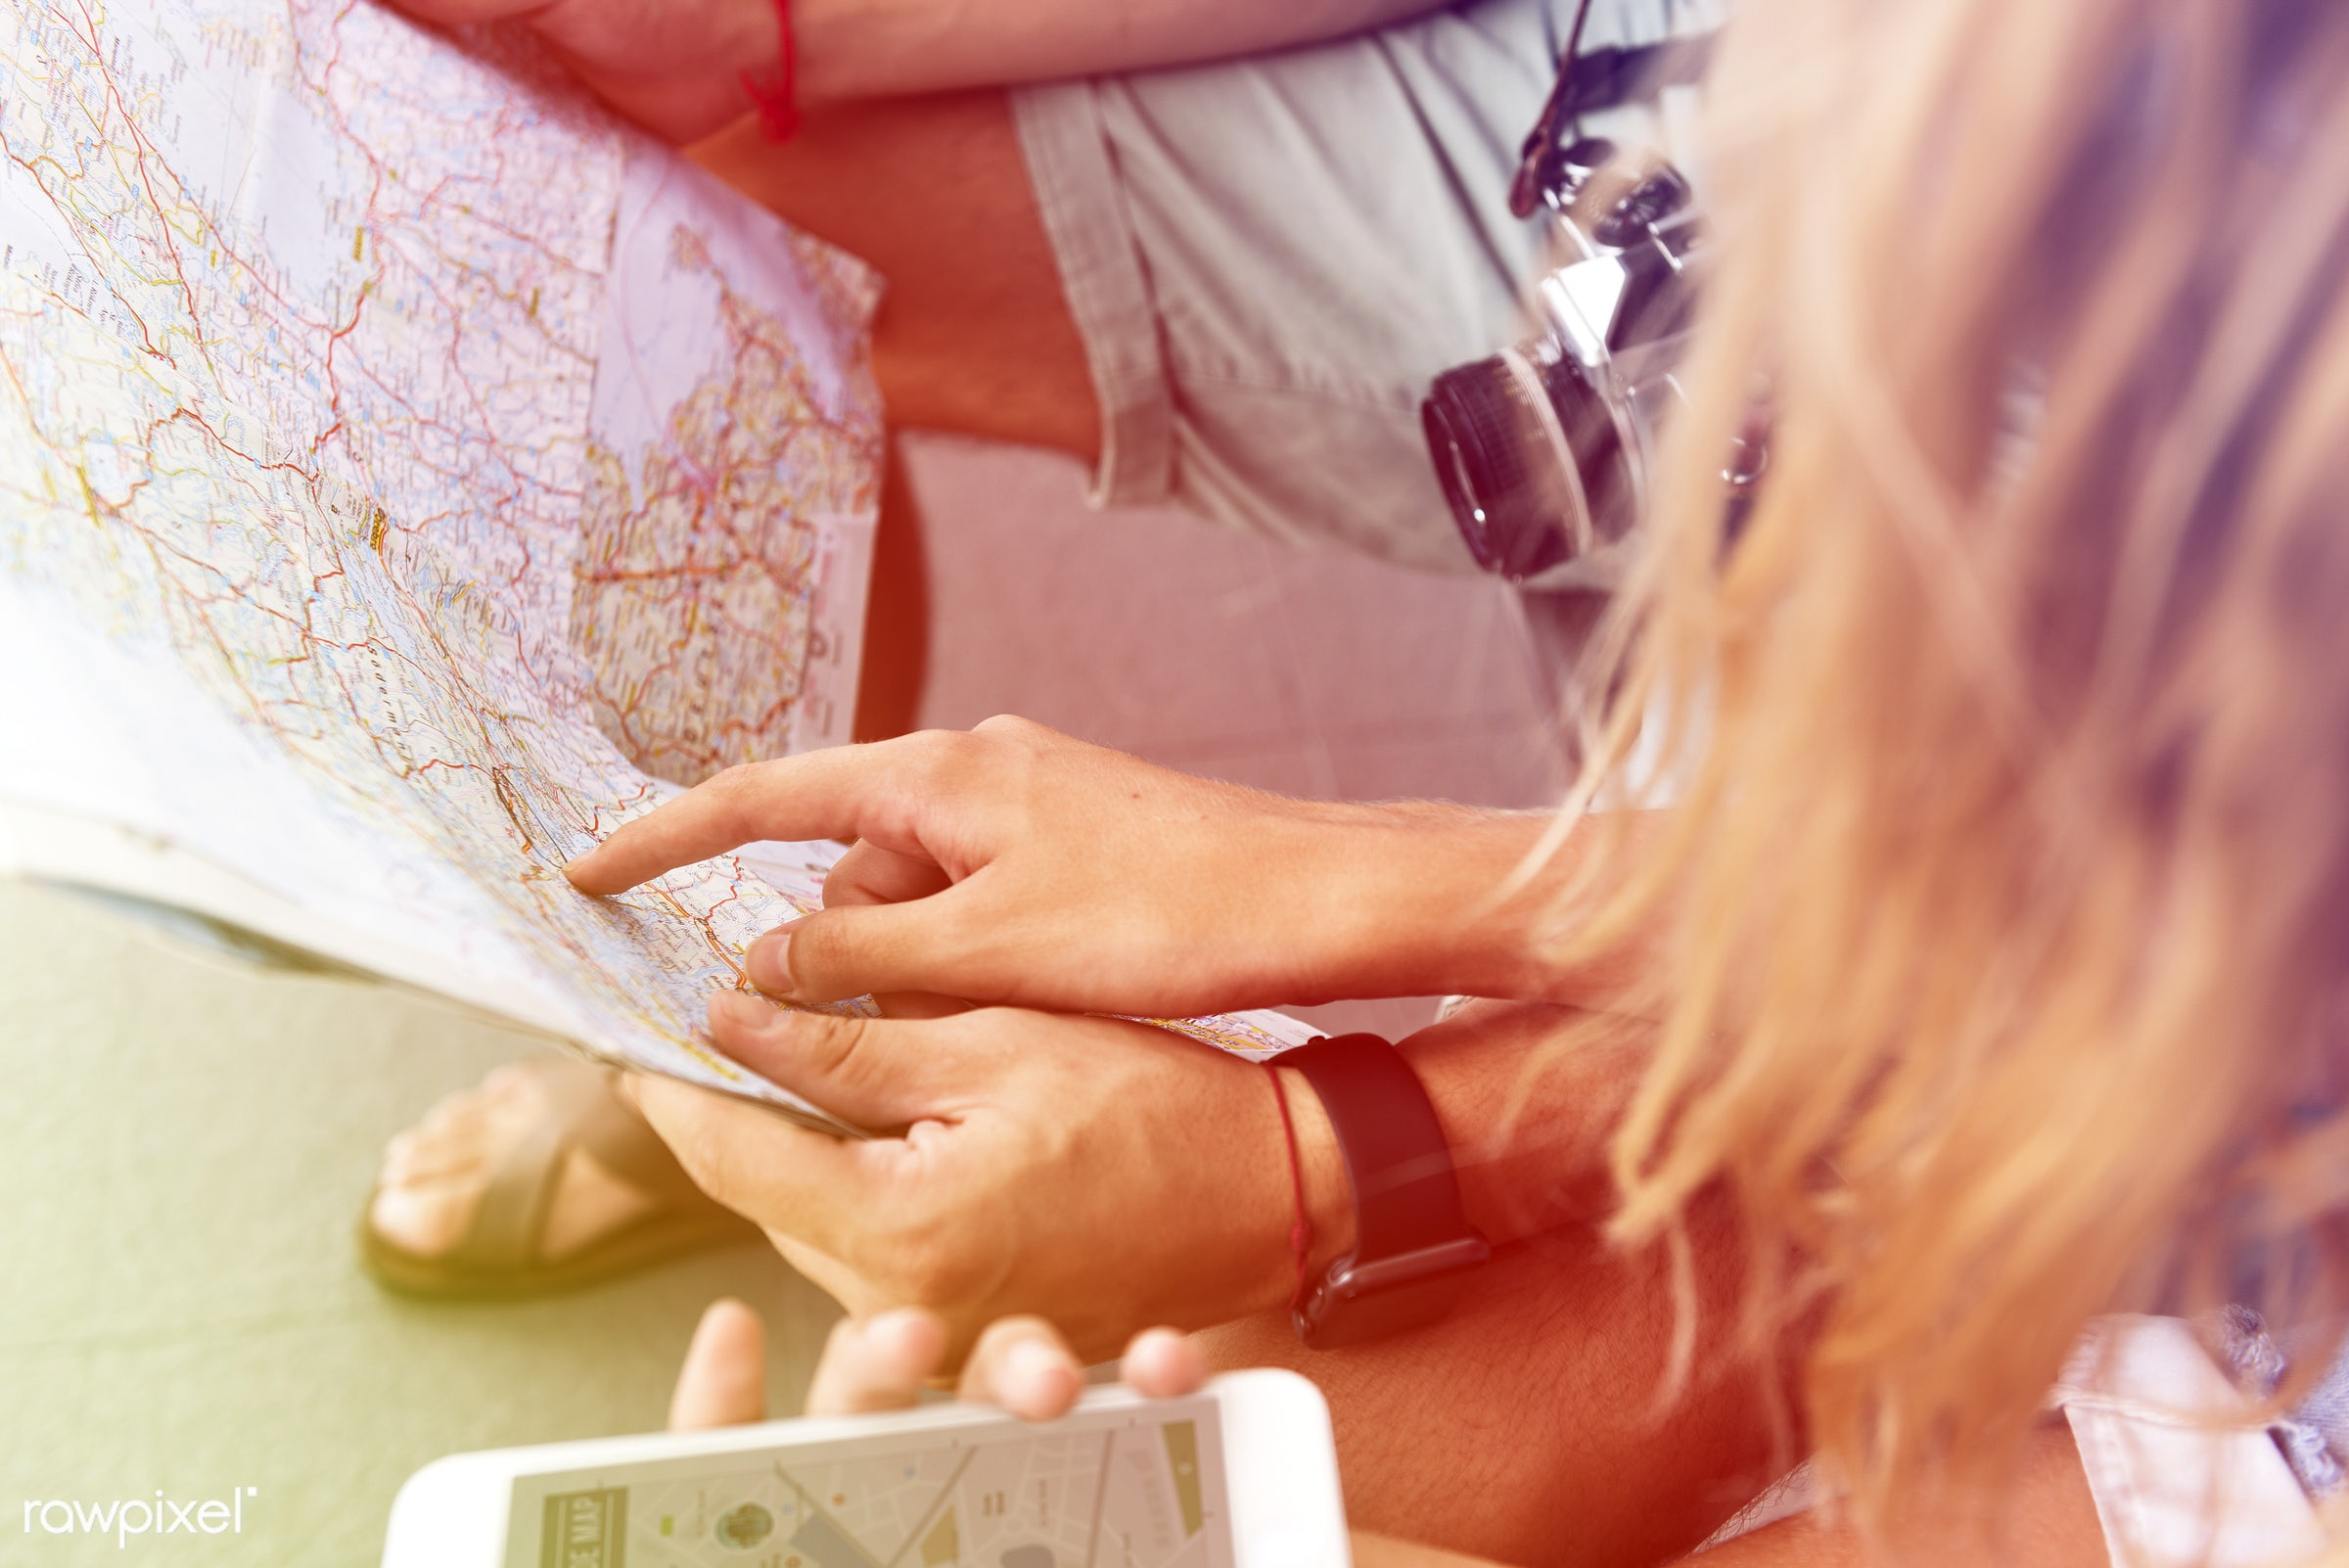 guide, using, automobile, backpackers, faded, vibrant, transportation, travel, people, wanderlust, woman, blend, partner,...